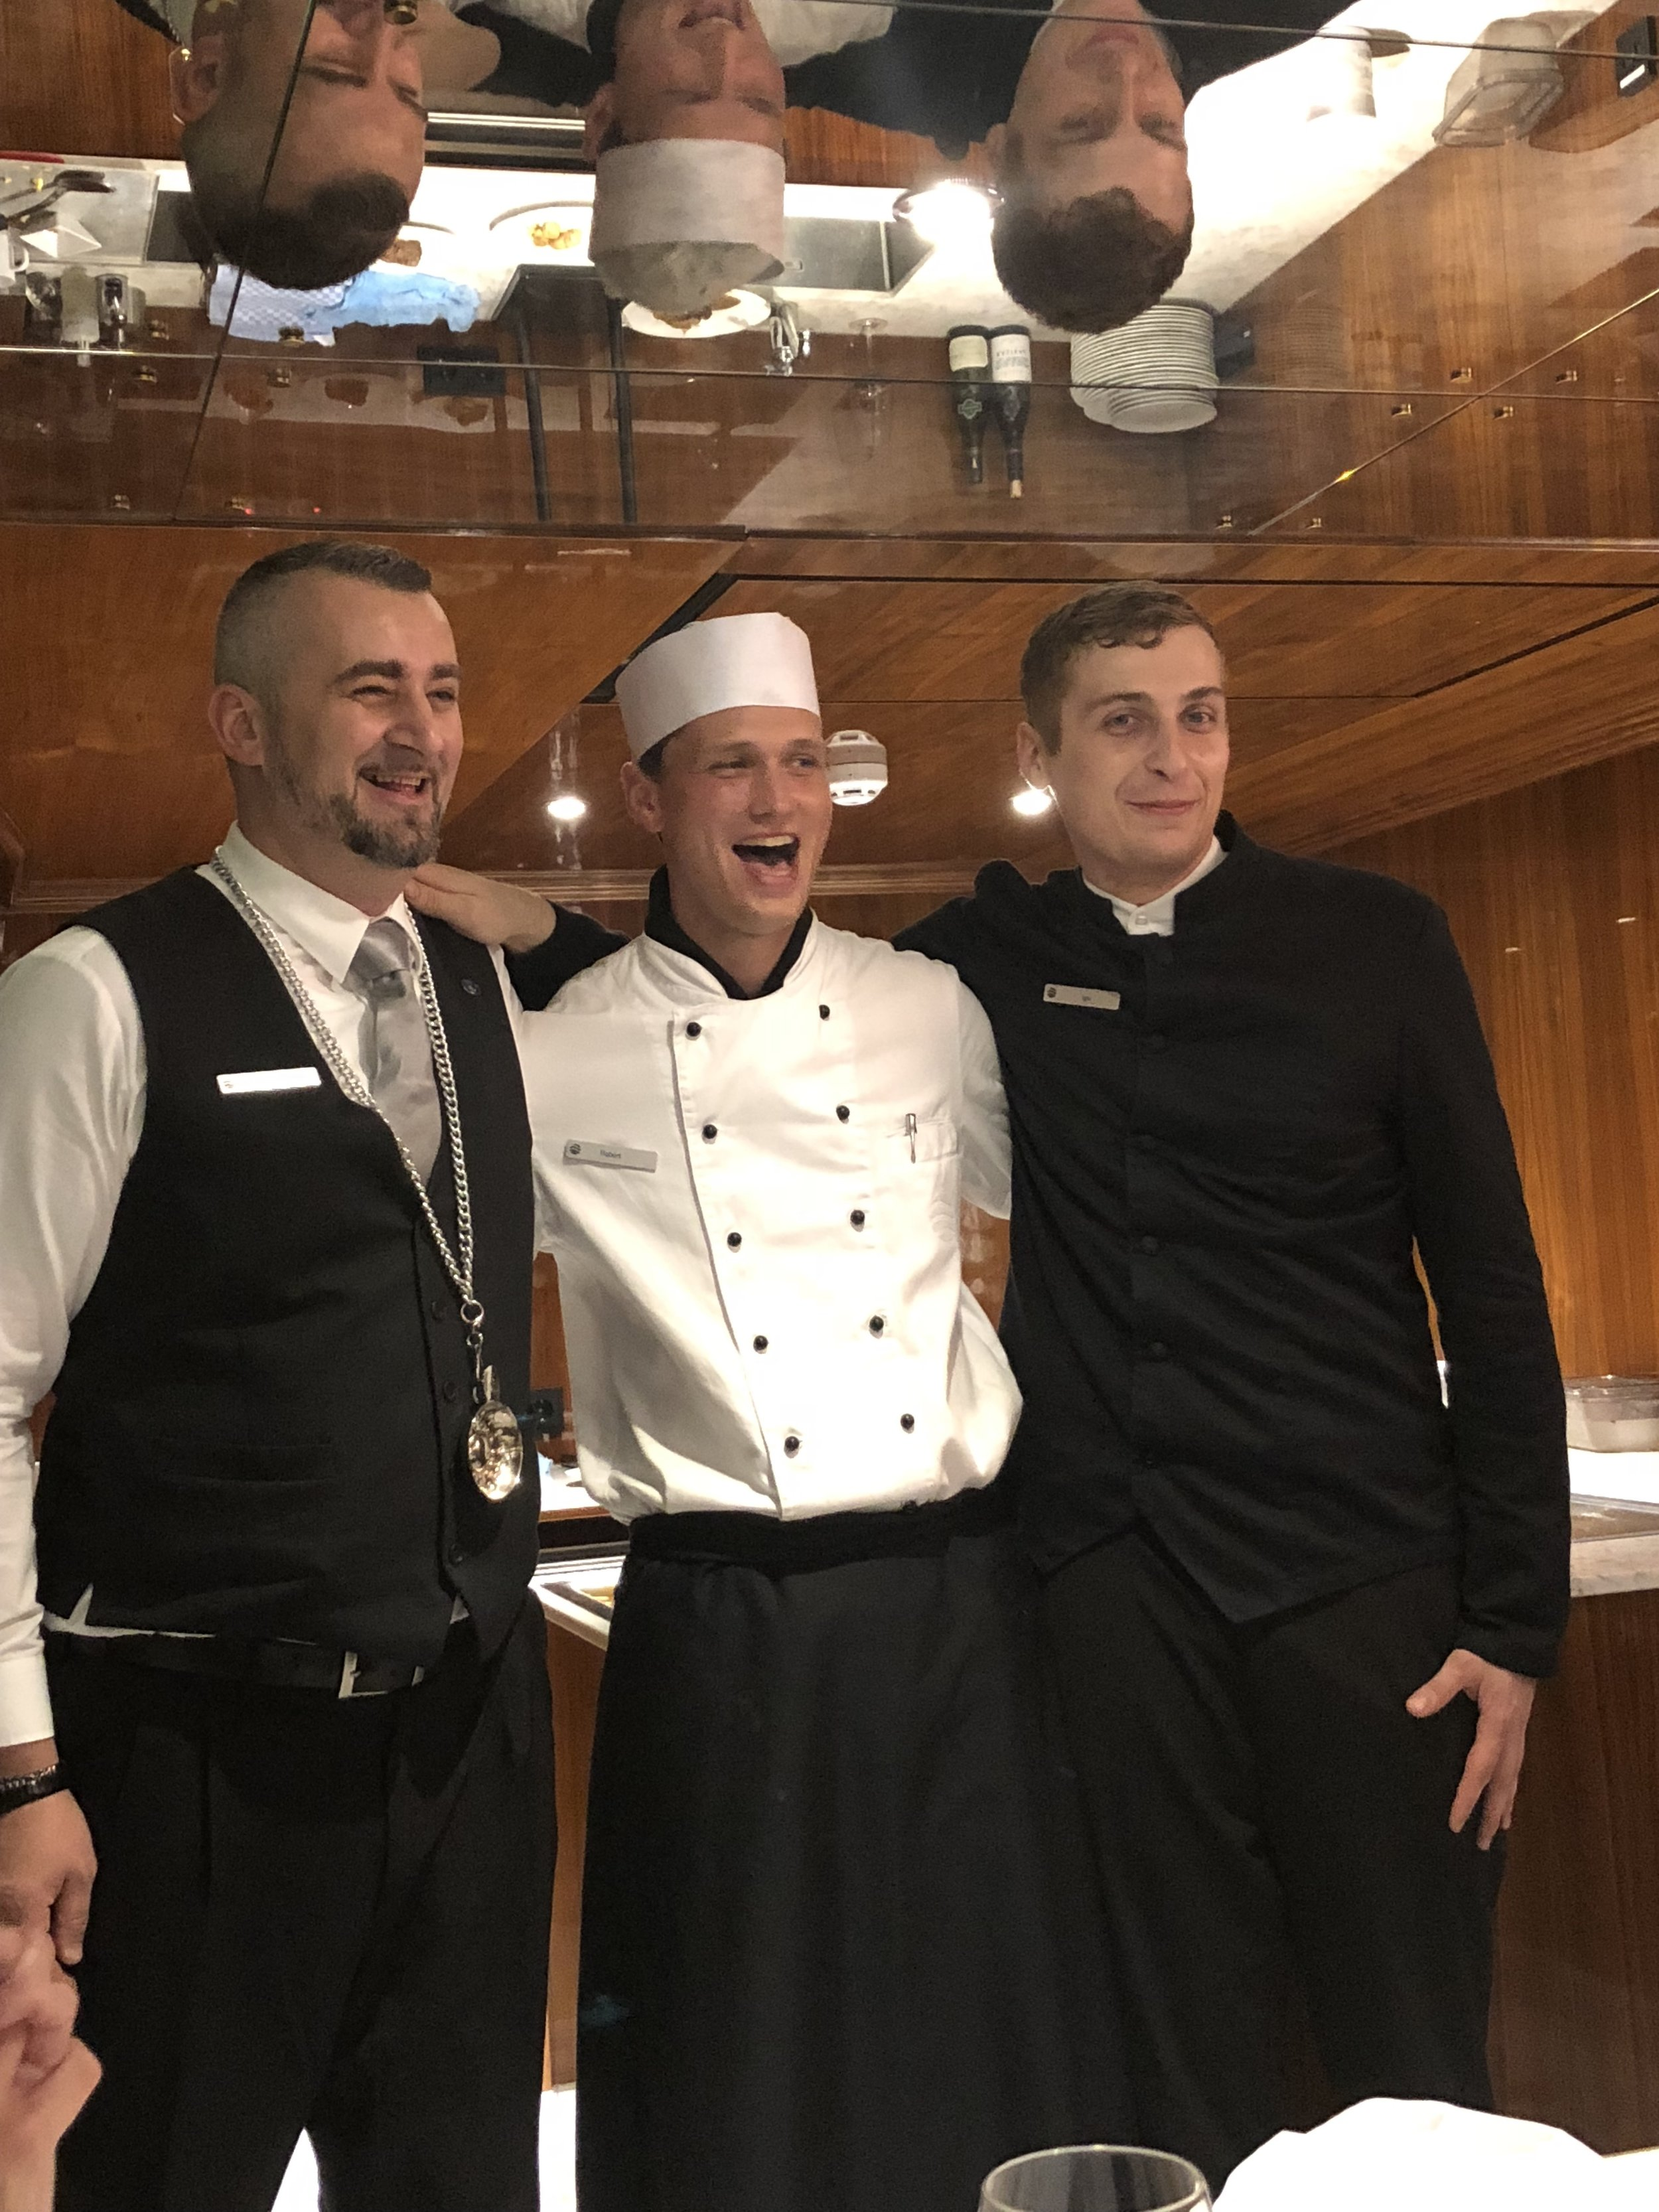 Our private dinner onboard in the Caves des Vins was made all the more special by all of this cuteness! You can tell the staff loves what they do. And that means the guests love the experience.